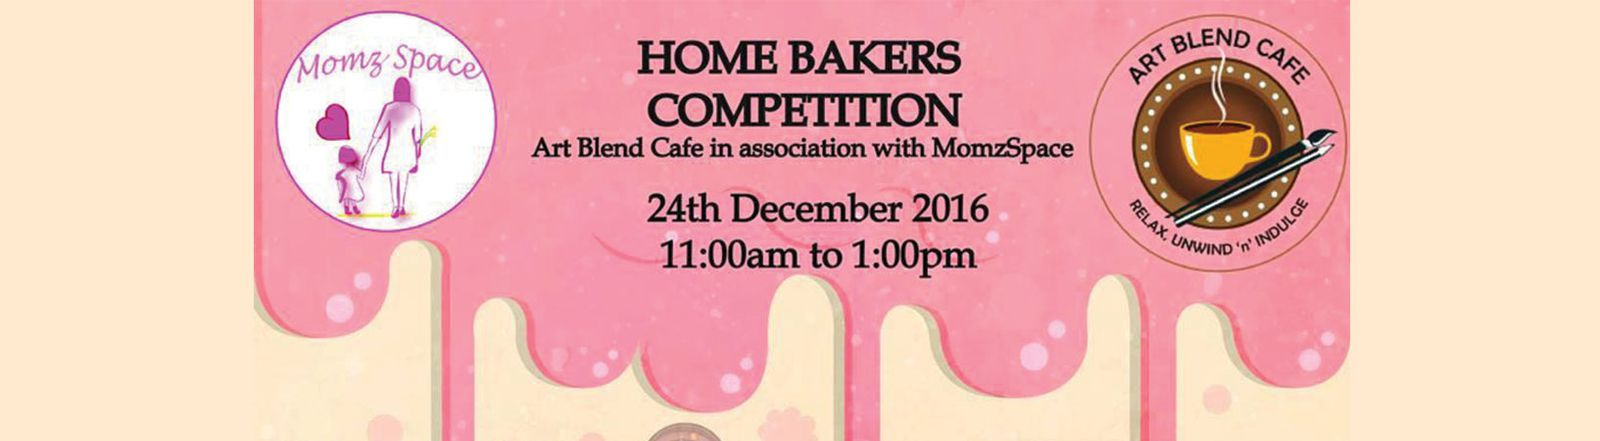 1482382011home-bakers-competition_1